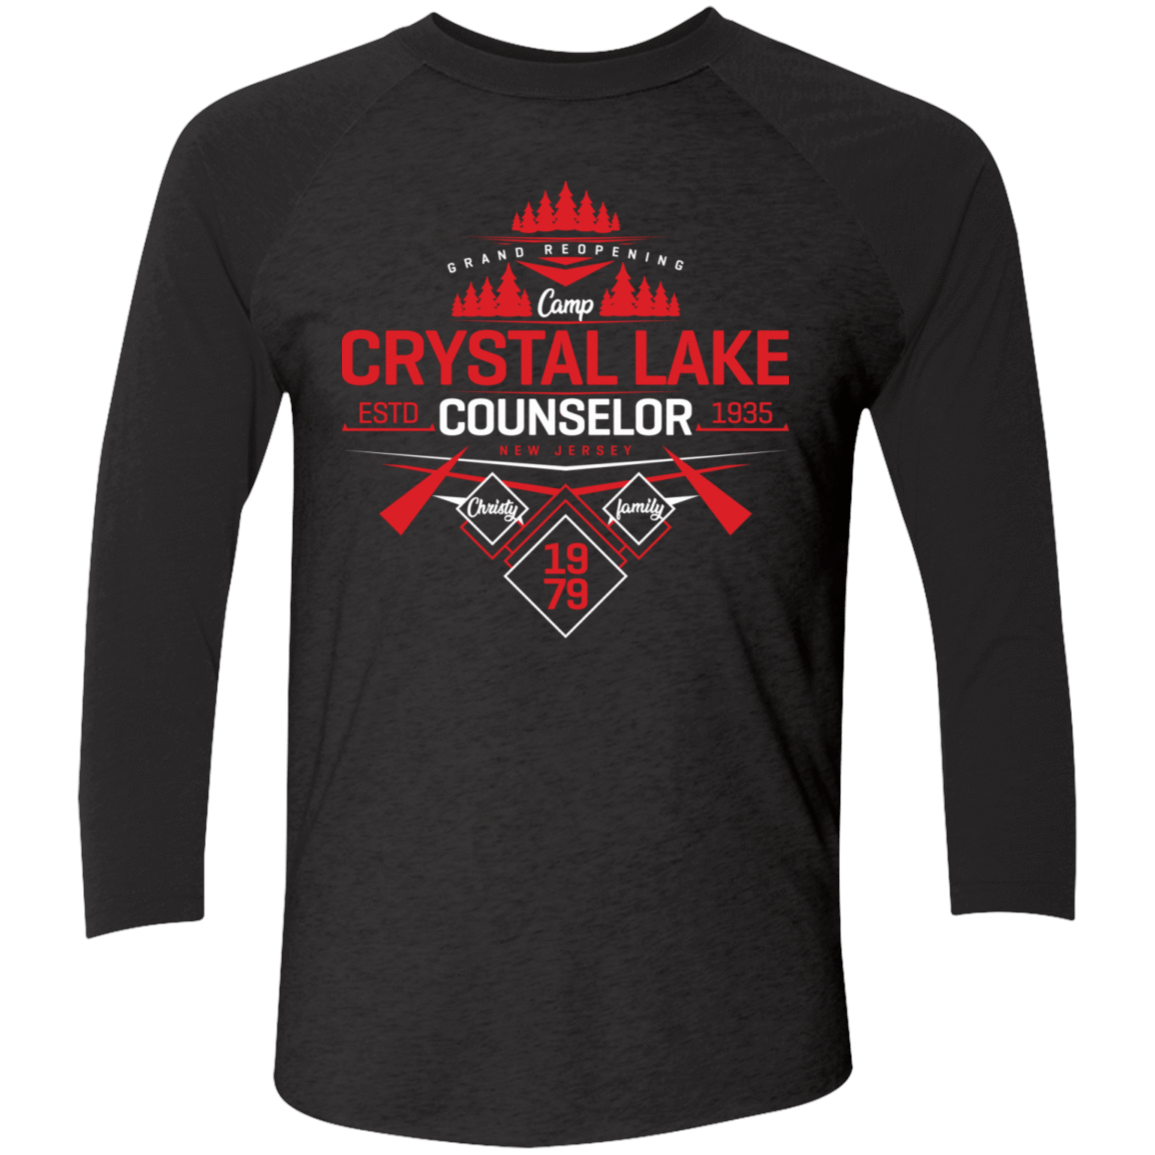 T-Shirts Vintage Black/Vintage Black / X-Small Crystal Lake Counselor Men's Triblend 3/4 Sleeve